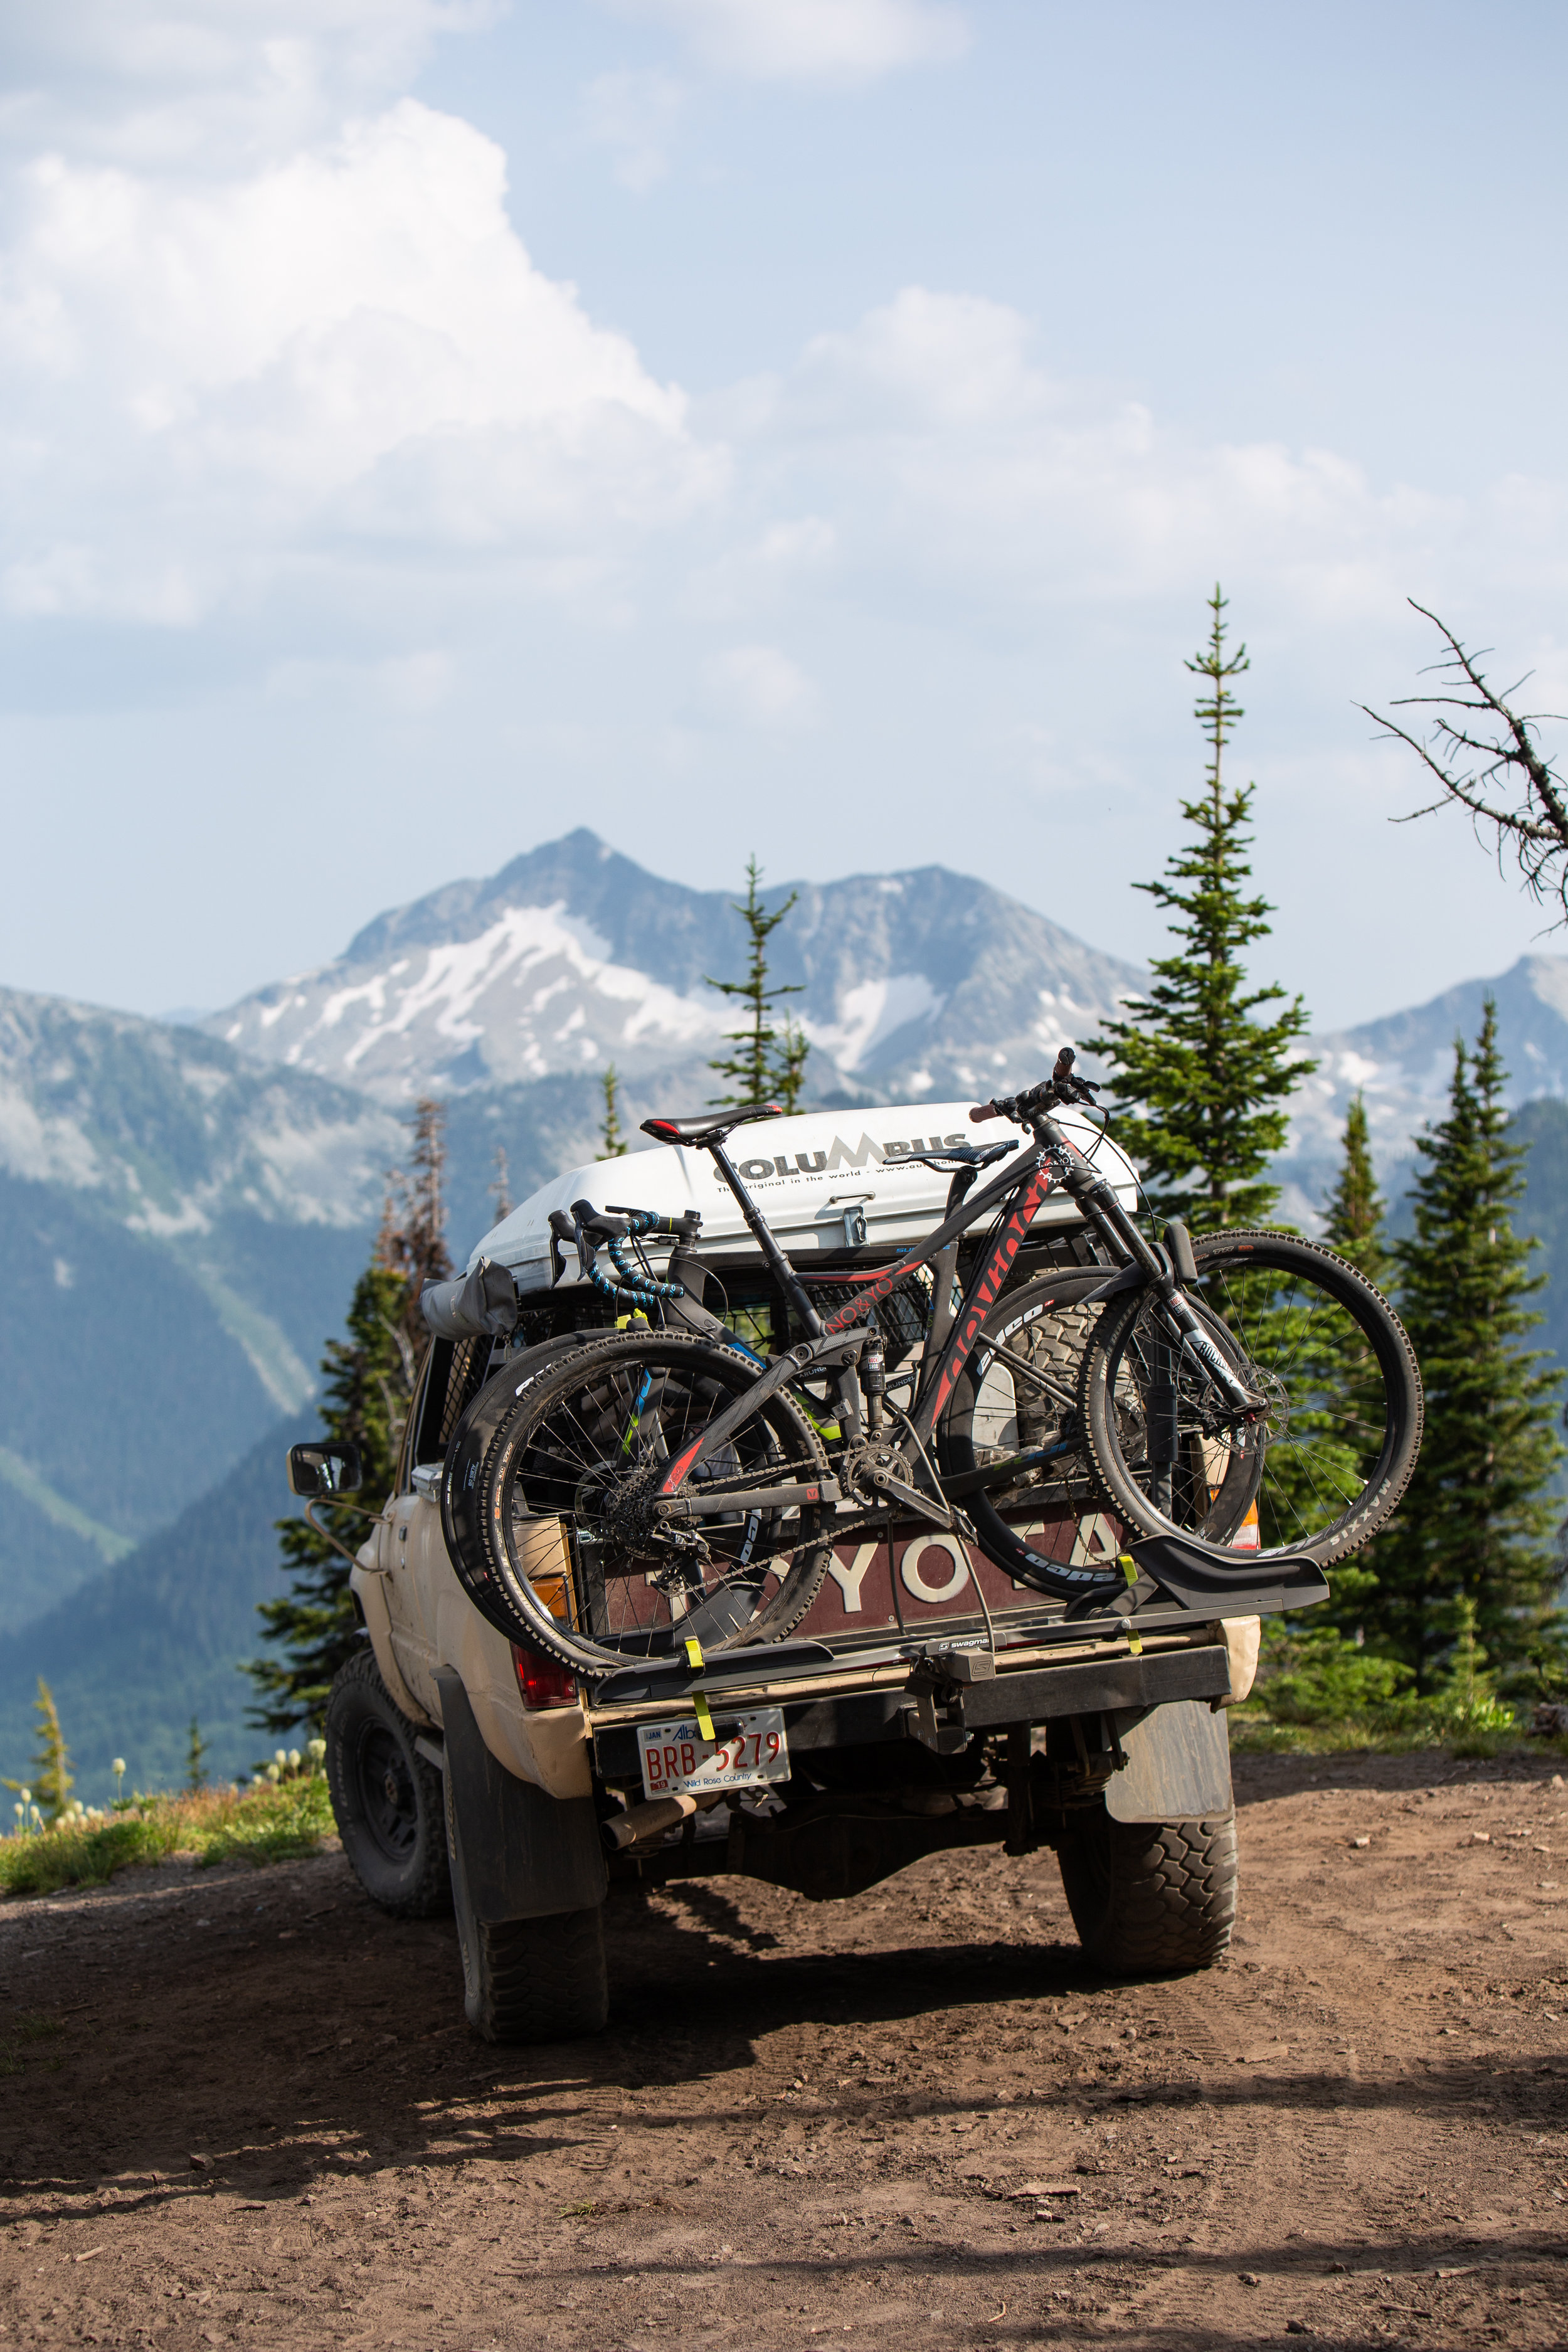 Who would have known that Alison's bike would make it to such heights via 4x4 truck.